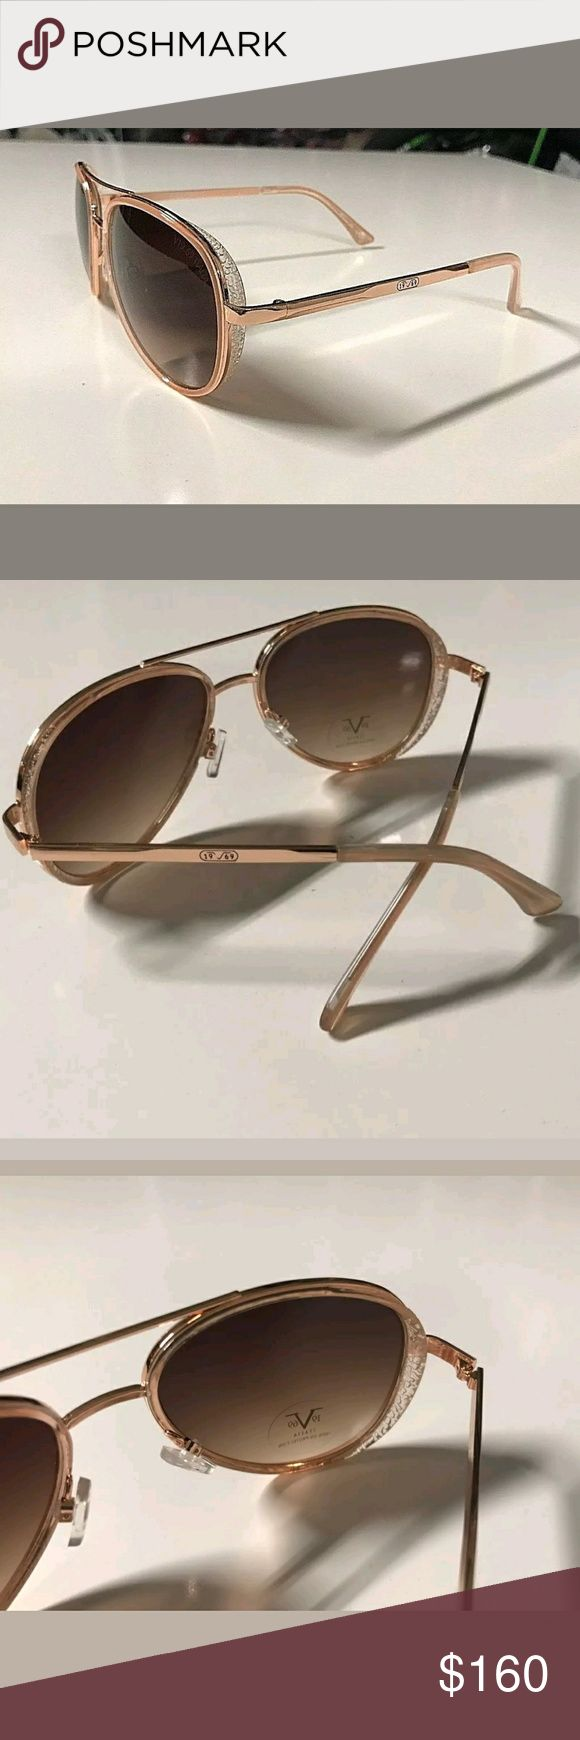 💥NEW💥 Versace Aviator Sunglasses Beautiful Versace Aviators. I no longer take offers. If you want a discount please use my bundle option. Please see all photos for full description and details. Versace 19.69 Accessories Sunglasses